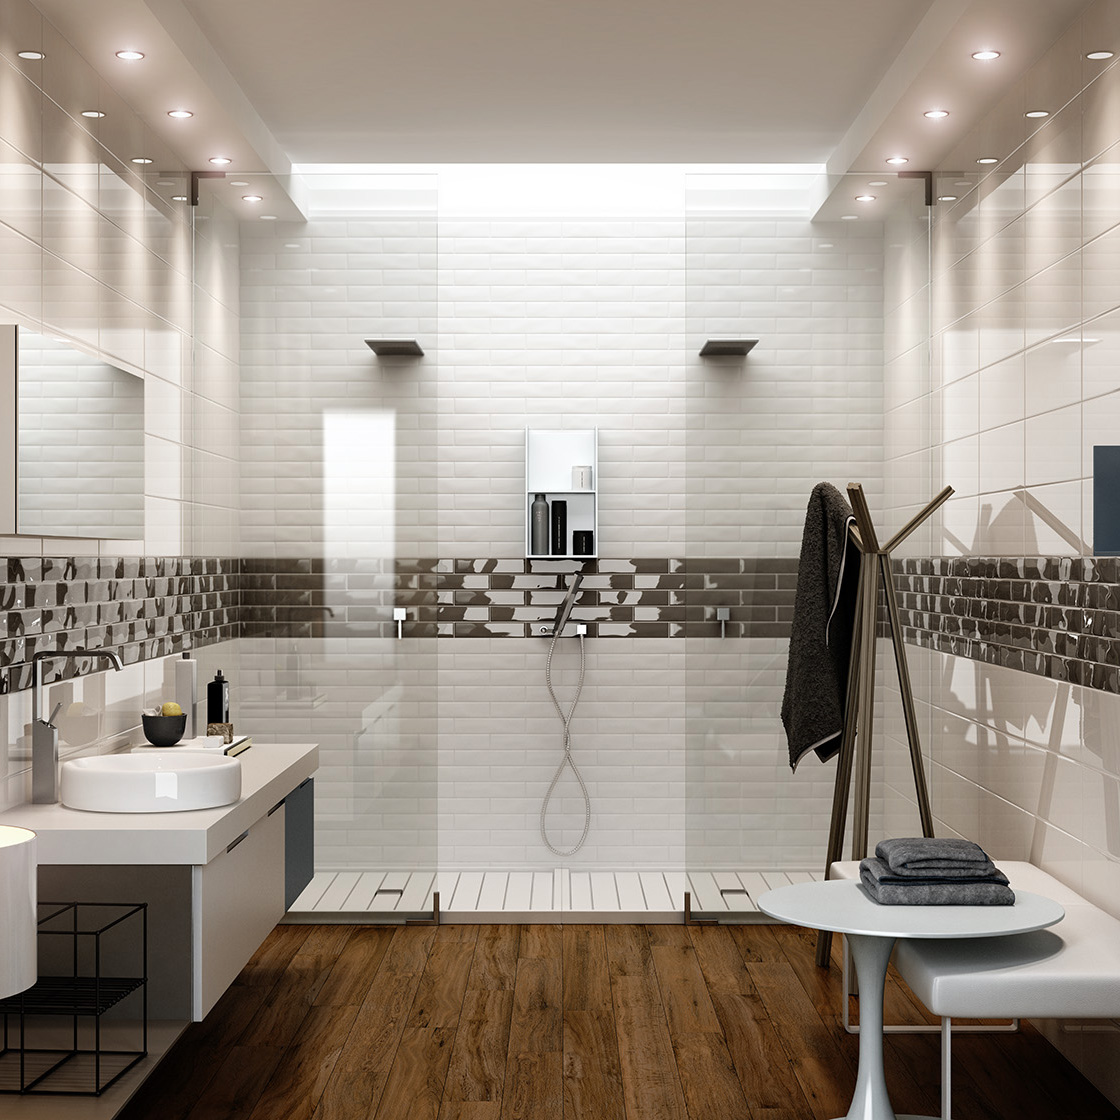 Mefa In - Arredo Bagno - Home Design - Clima - Superfici